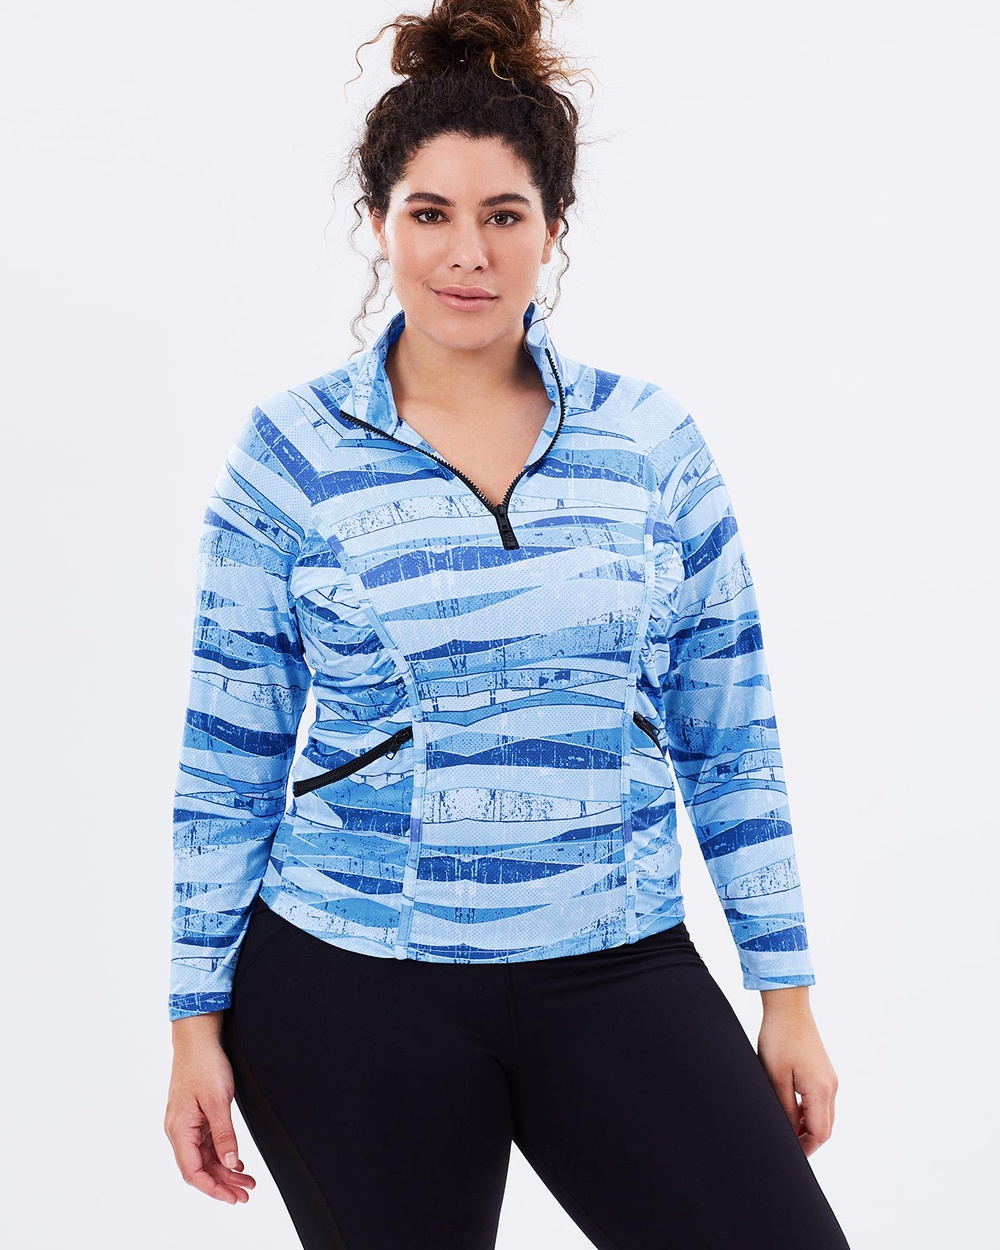 Curvy Chic Sports - Stay Cool Long Sleeve Top - Long Sleeve T-Shirts (Blue Print) Stay Cool Long Sleeve Top